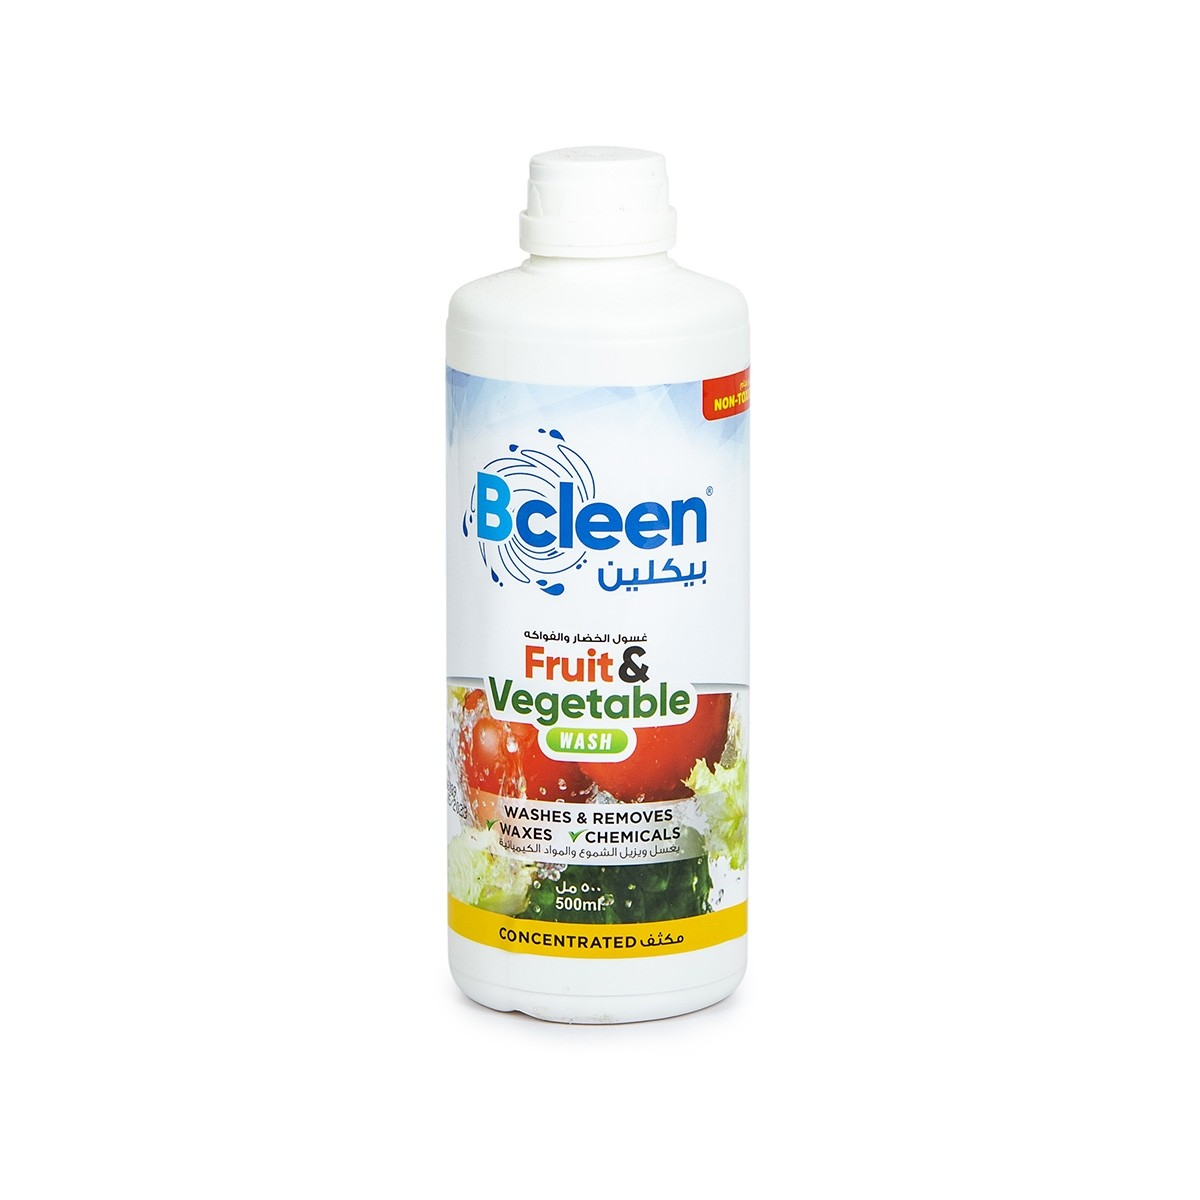 Bcleen® Fruit & Vegetable Wash 500ml - Concentrated | 24pcs